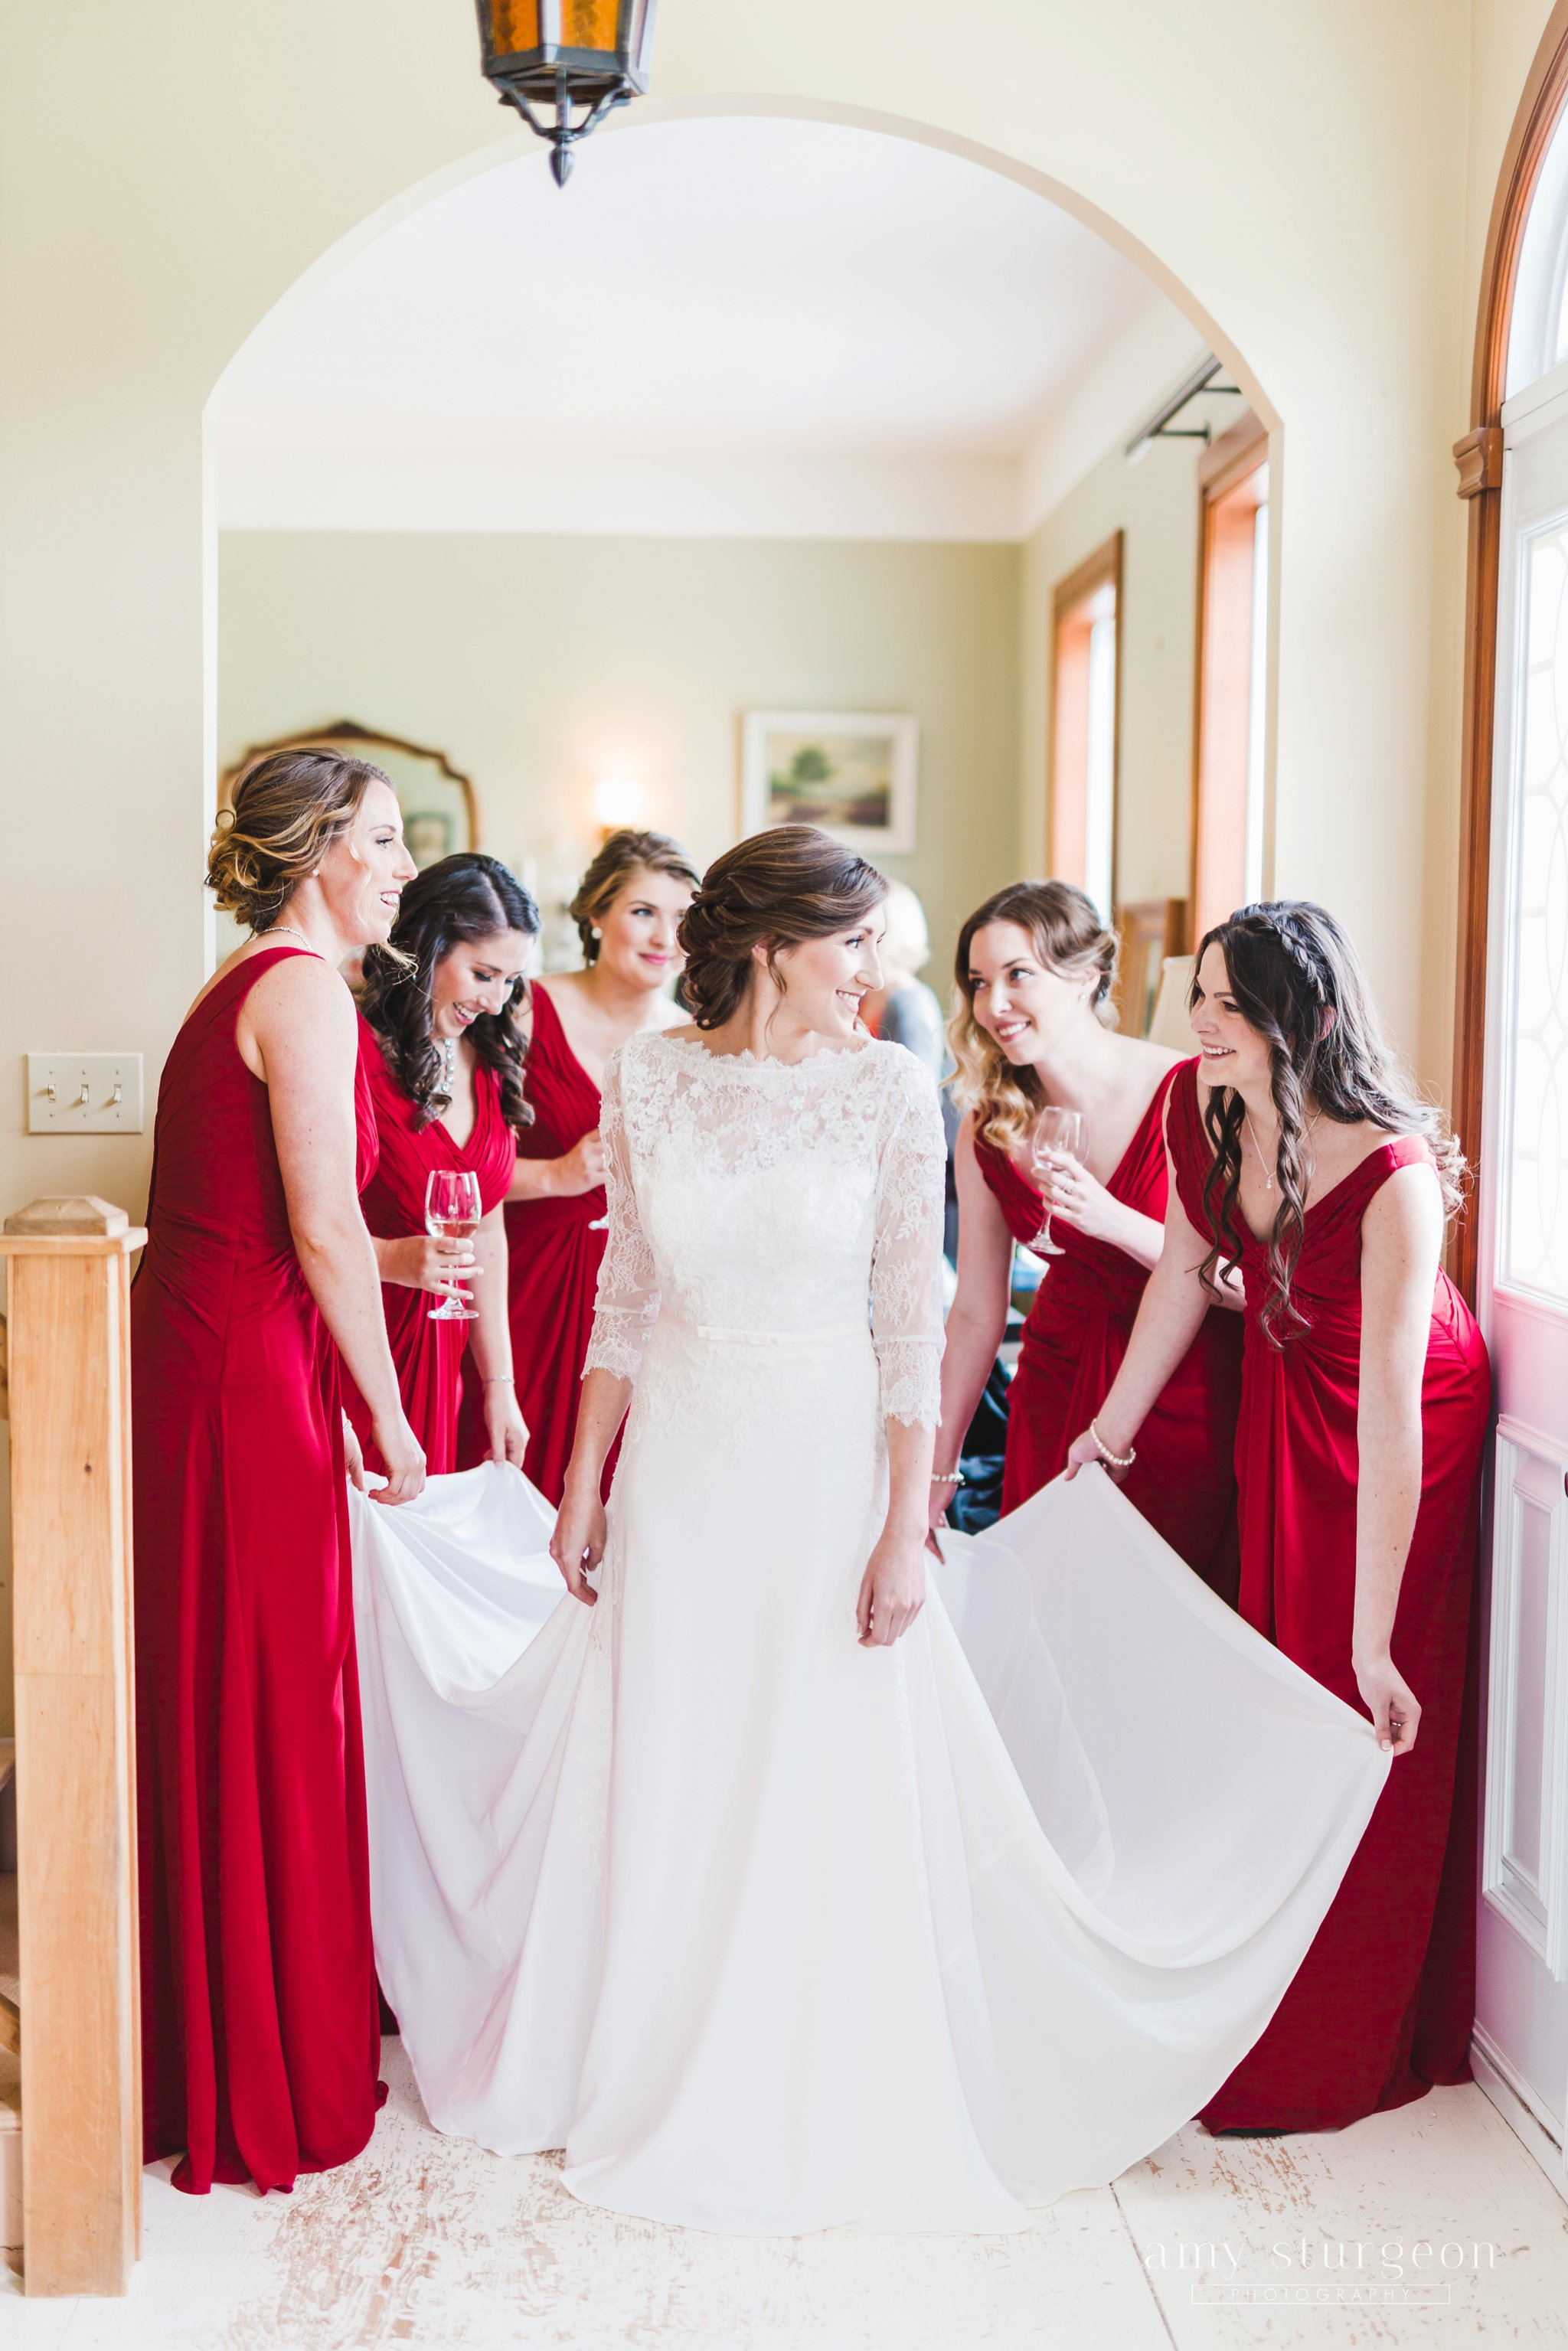 The bridesmaids helped the bride get in to her dress at the alpaca farm wedding in ottawa